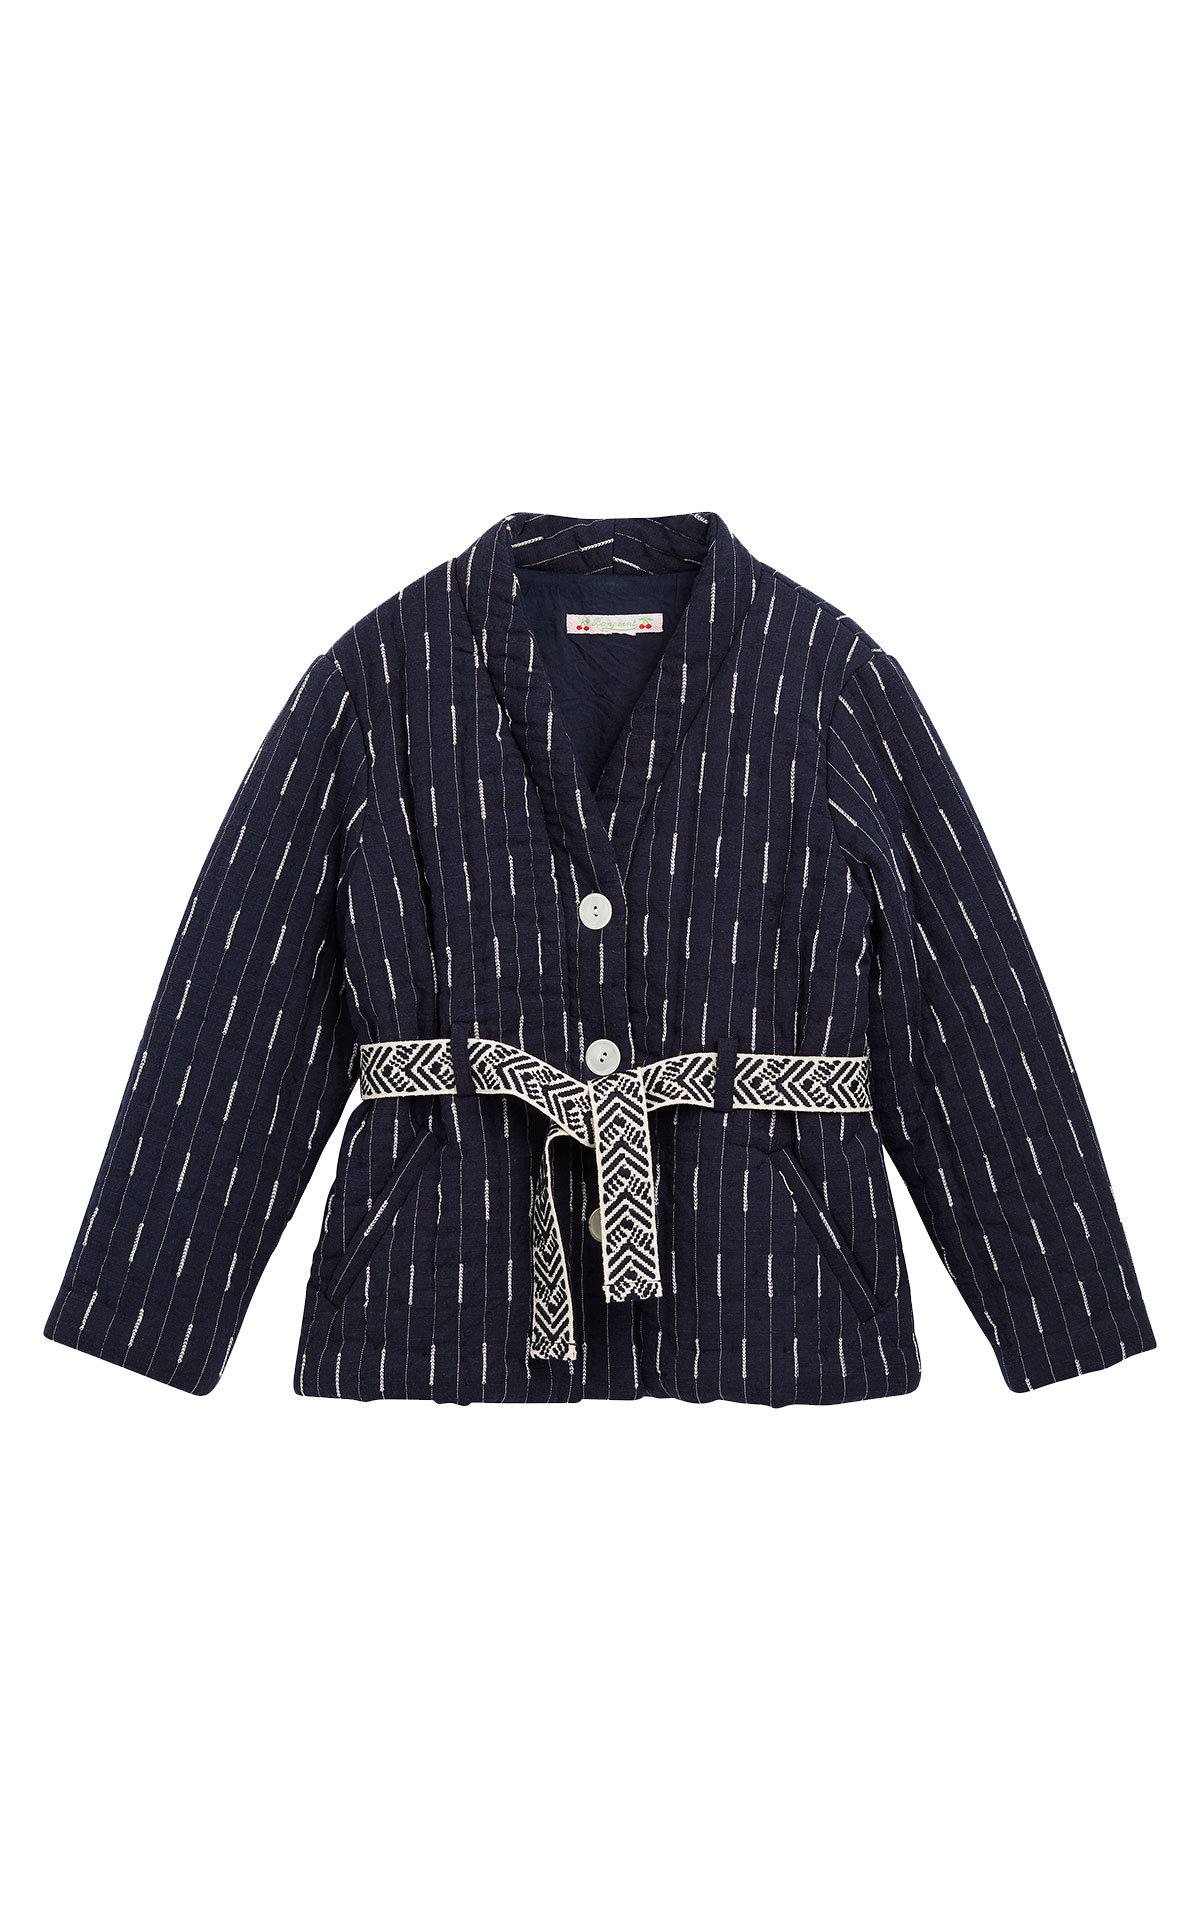 Bonpoint Tie waist jacket from Bicester Village